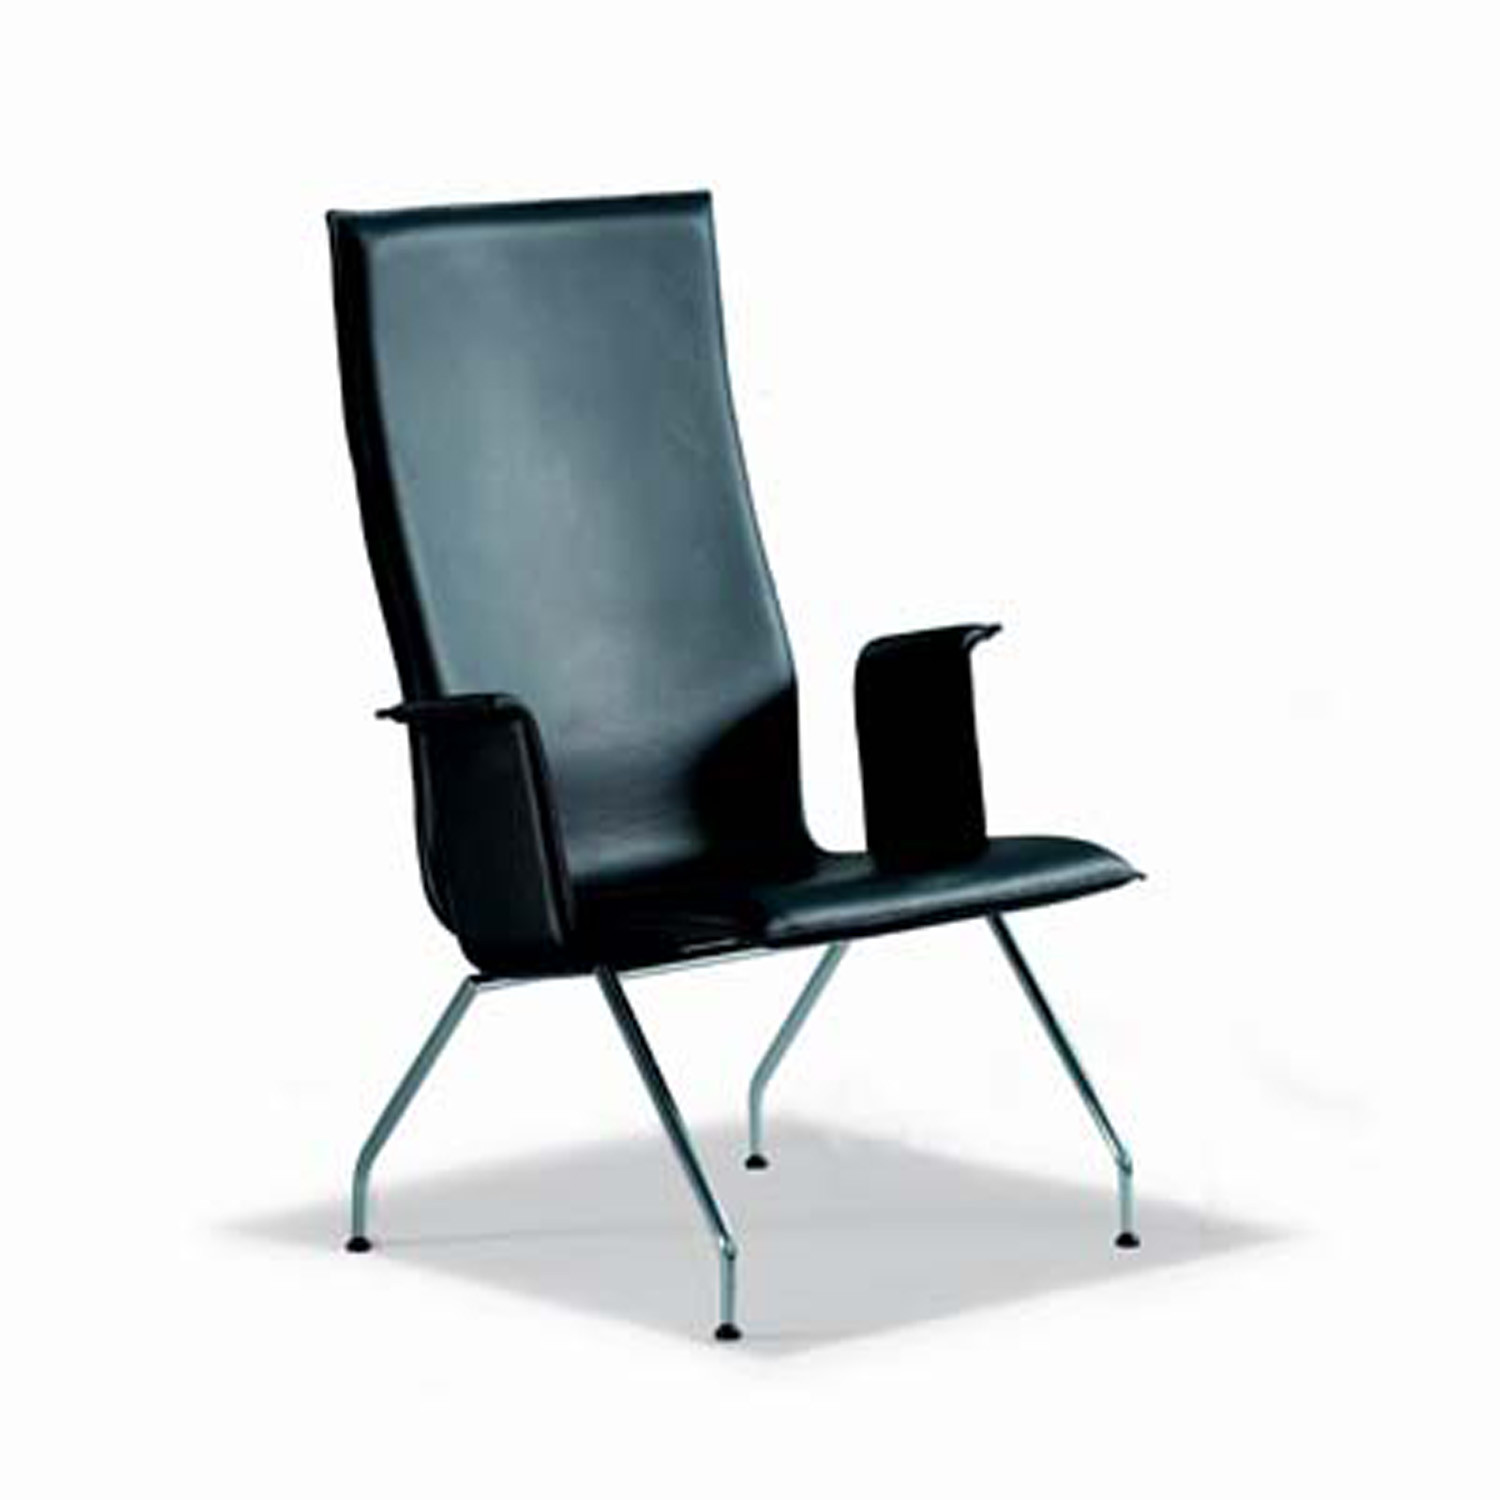 Tonica Easy Tall Armchair